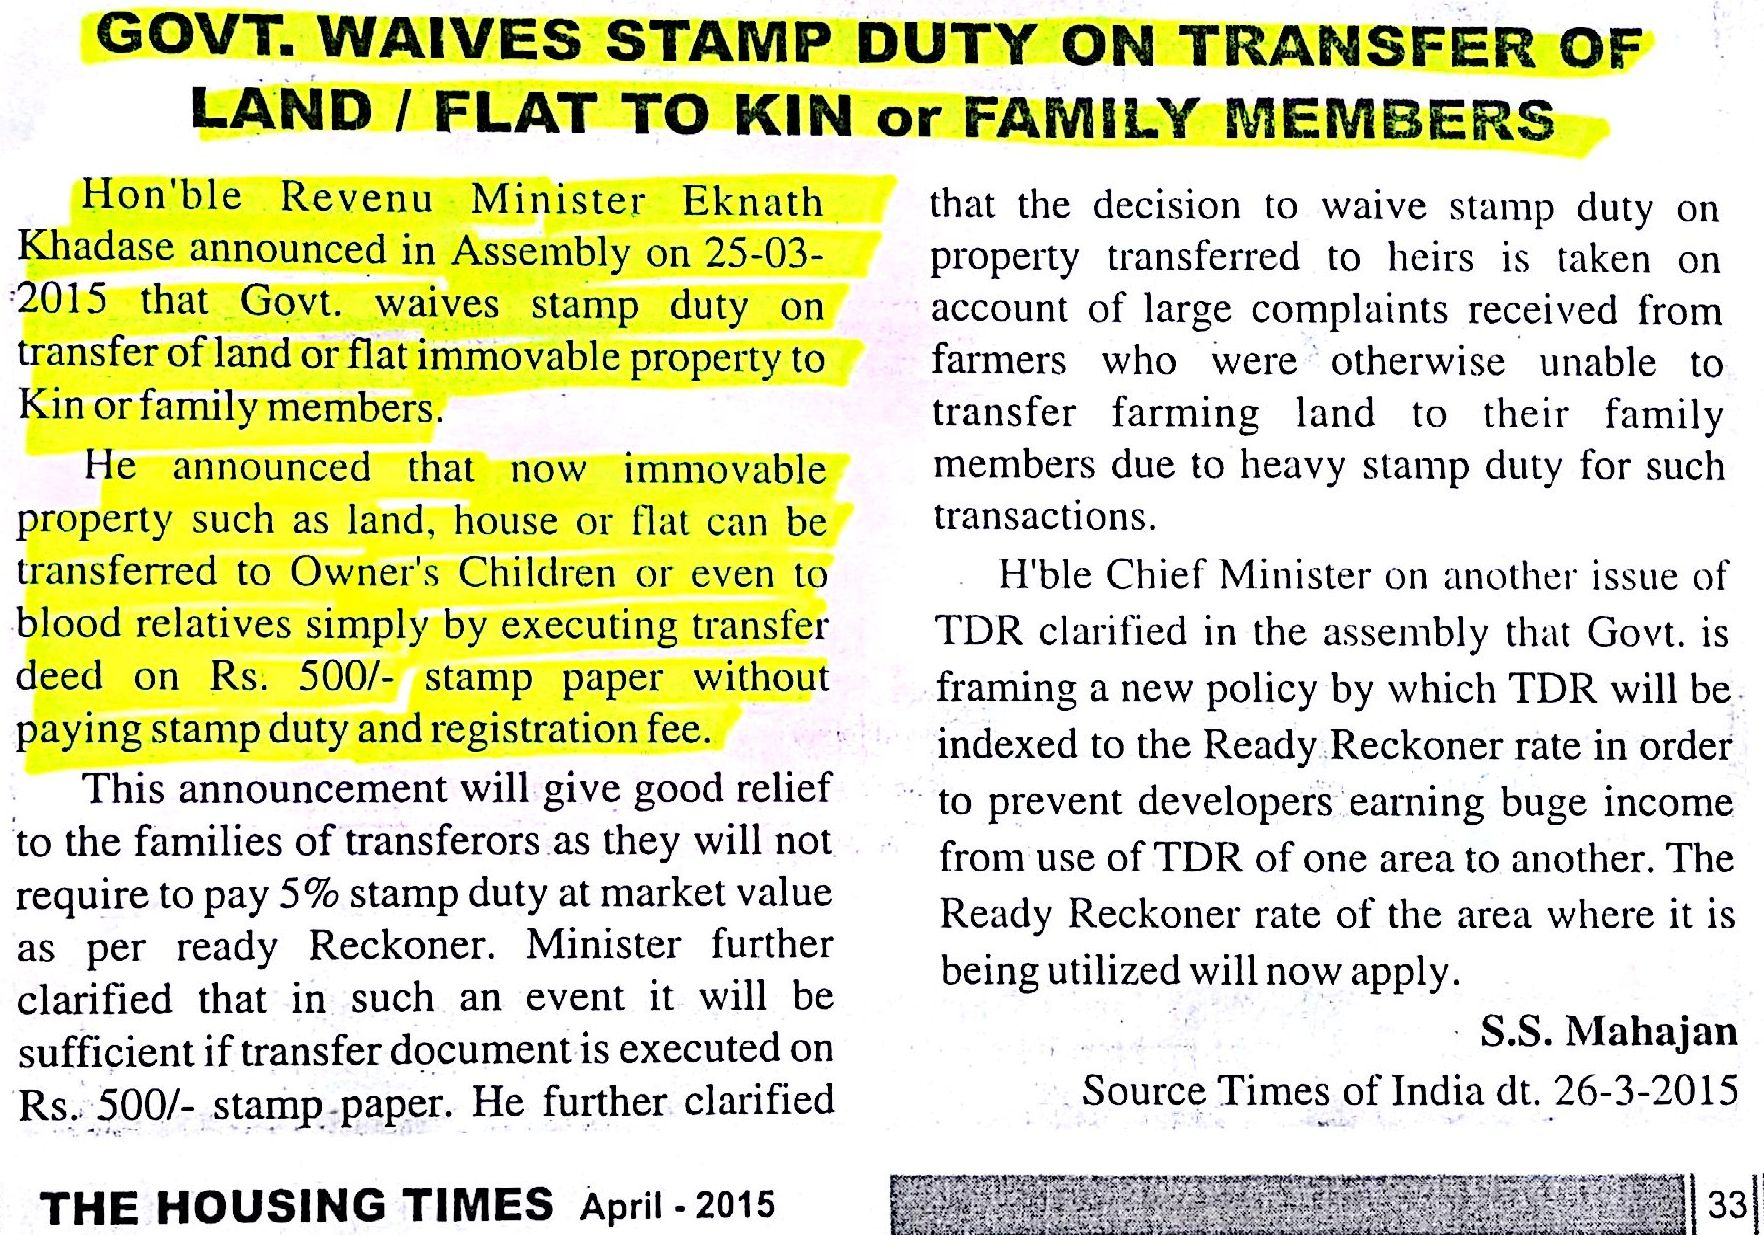 No Stamp Duty Required for transfer of property to relatives